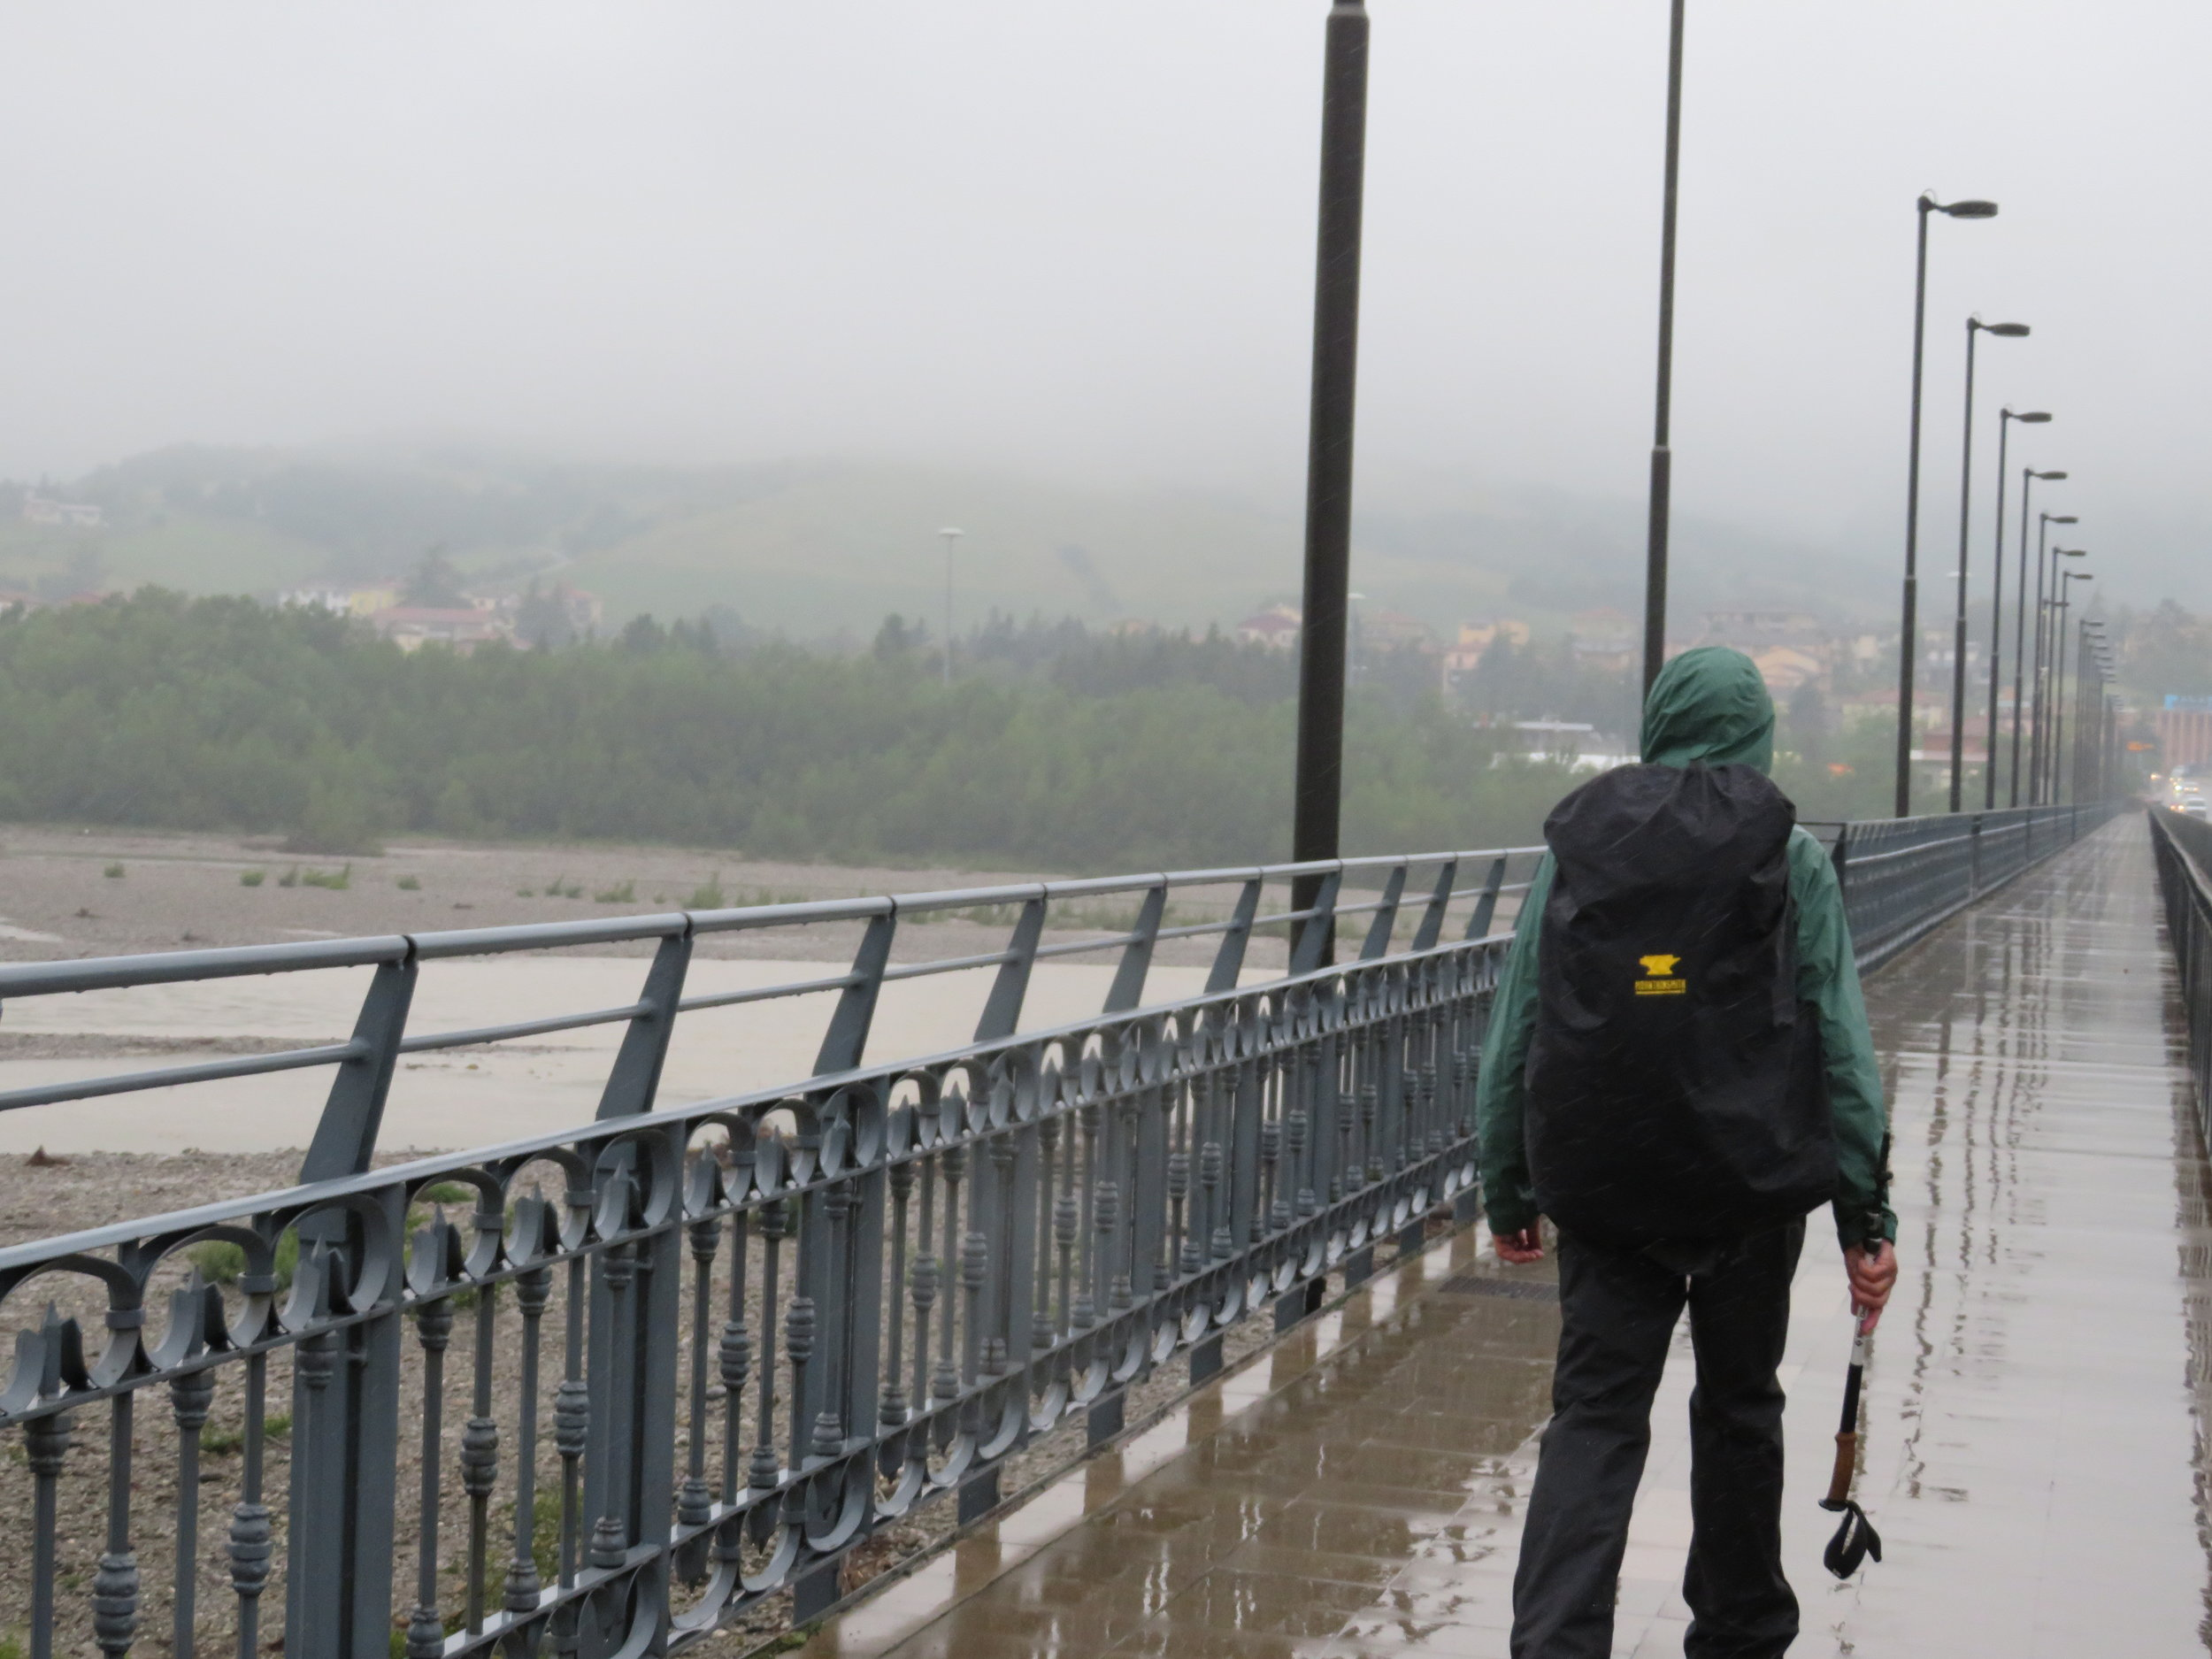 Crossing the Fiume Taro (Taro River) in Fornovo - the beginning of a very wet day!